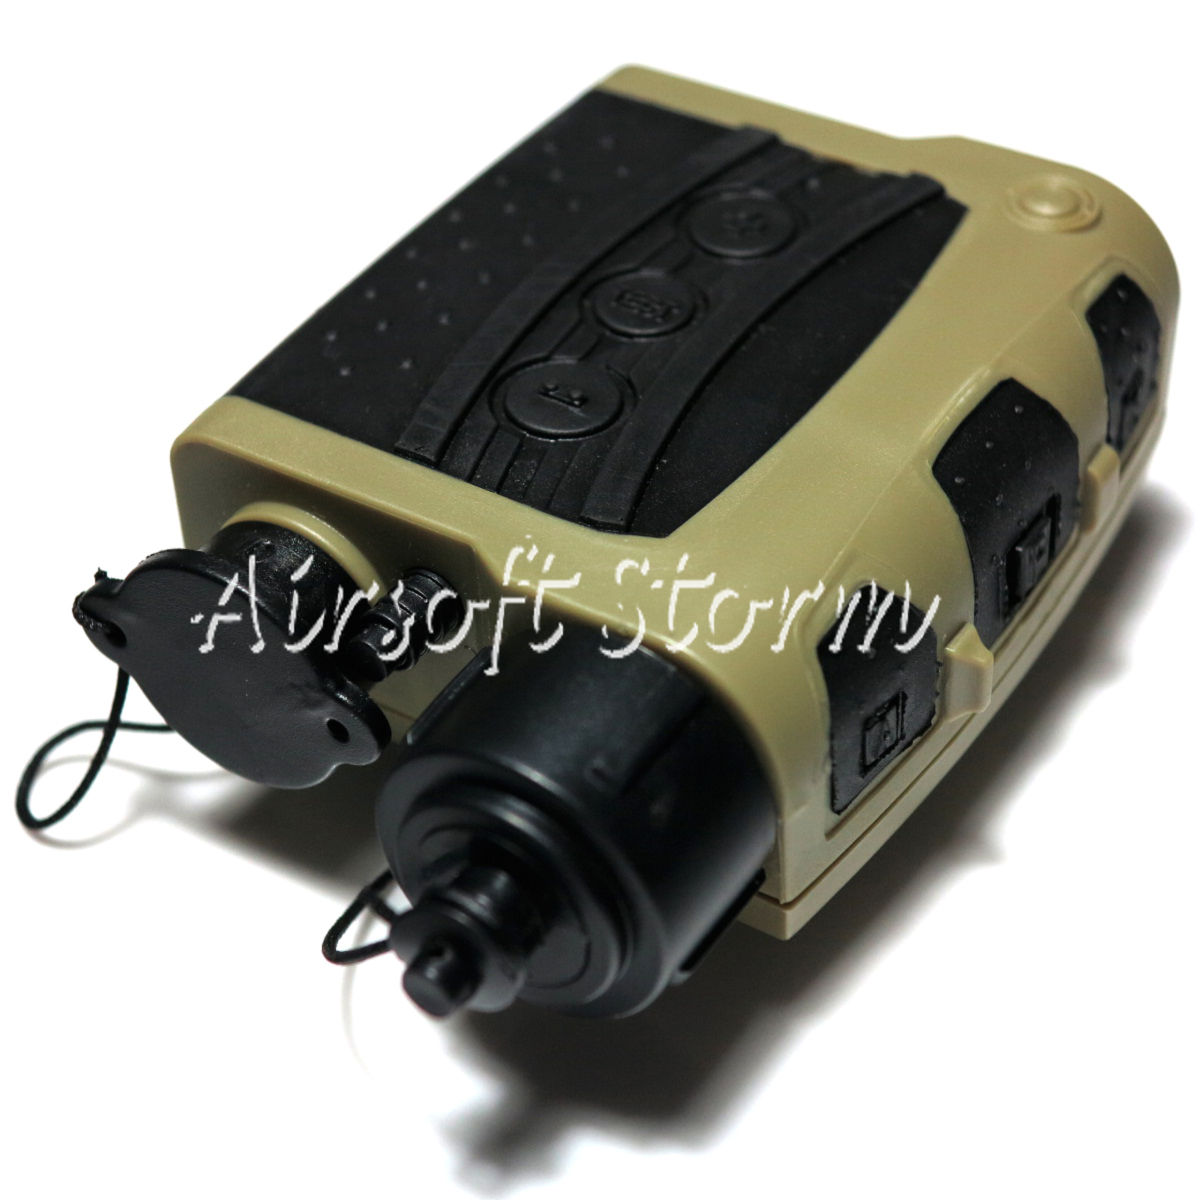 Airsoft SWAT Communications Gear Z Tactical ZQUIET PRO PTT & Wire for Motorola Talkabout Radio